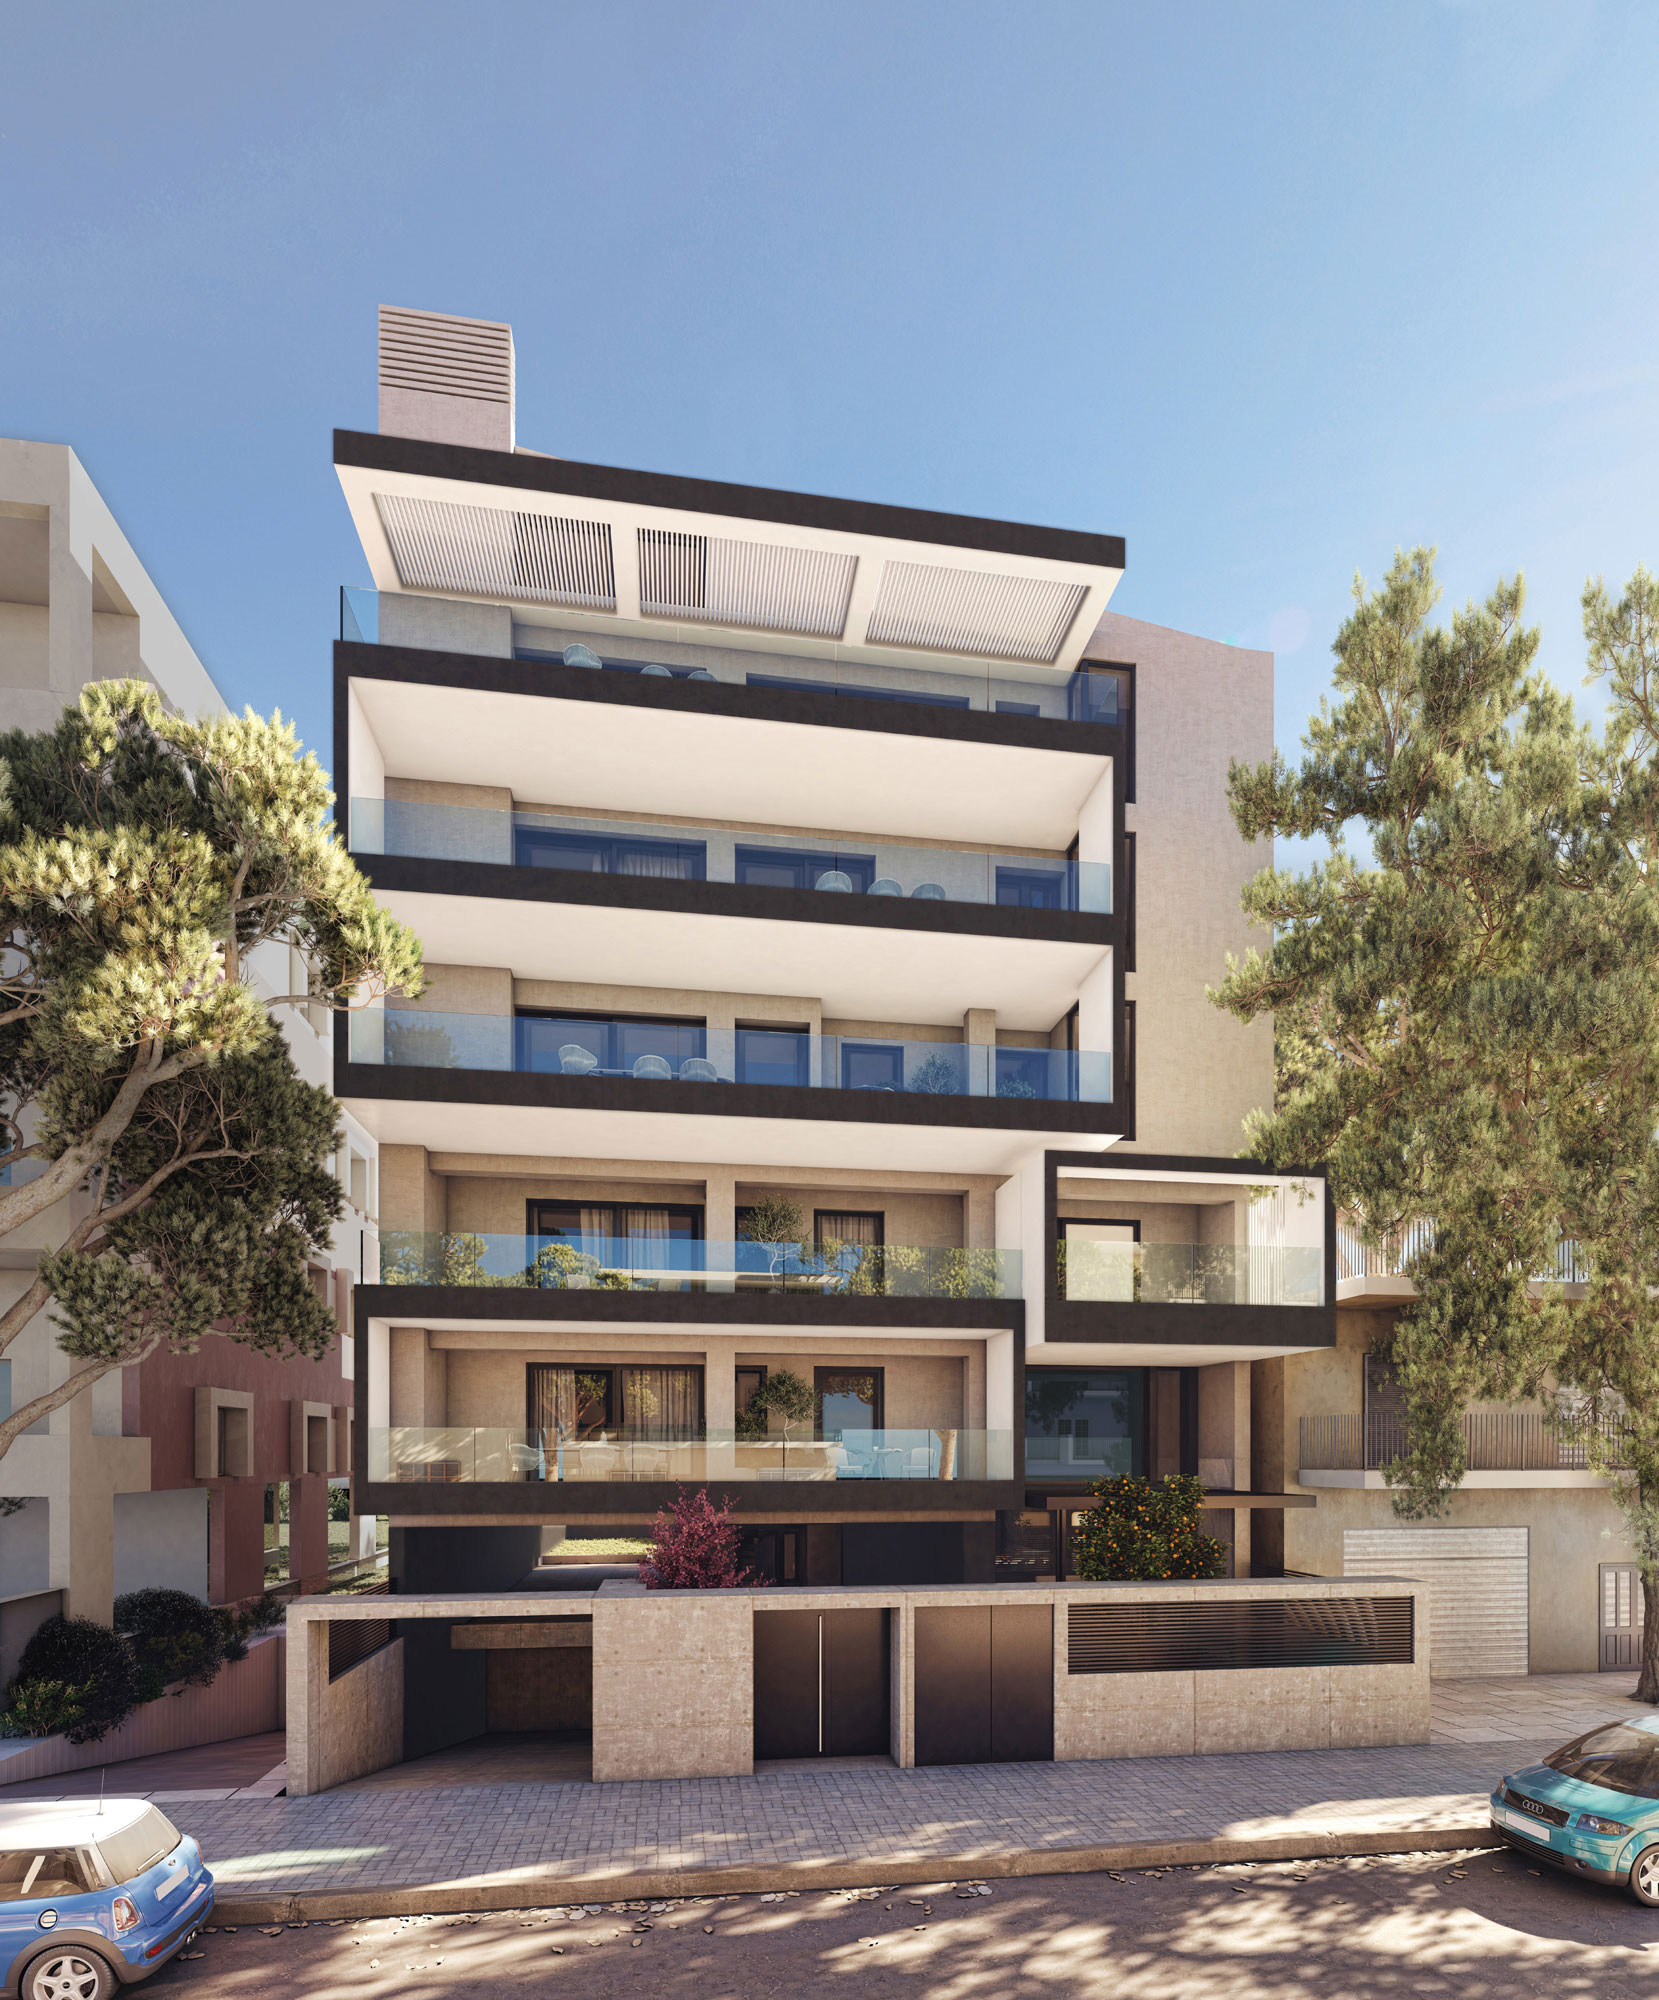 AXIACON - Ellinicon 3: The New A+ Energy Efficient Apartments